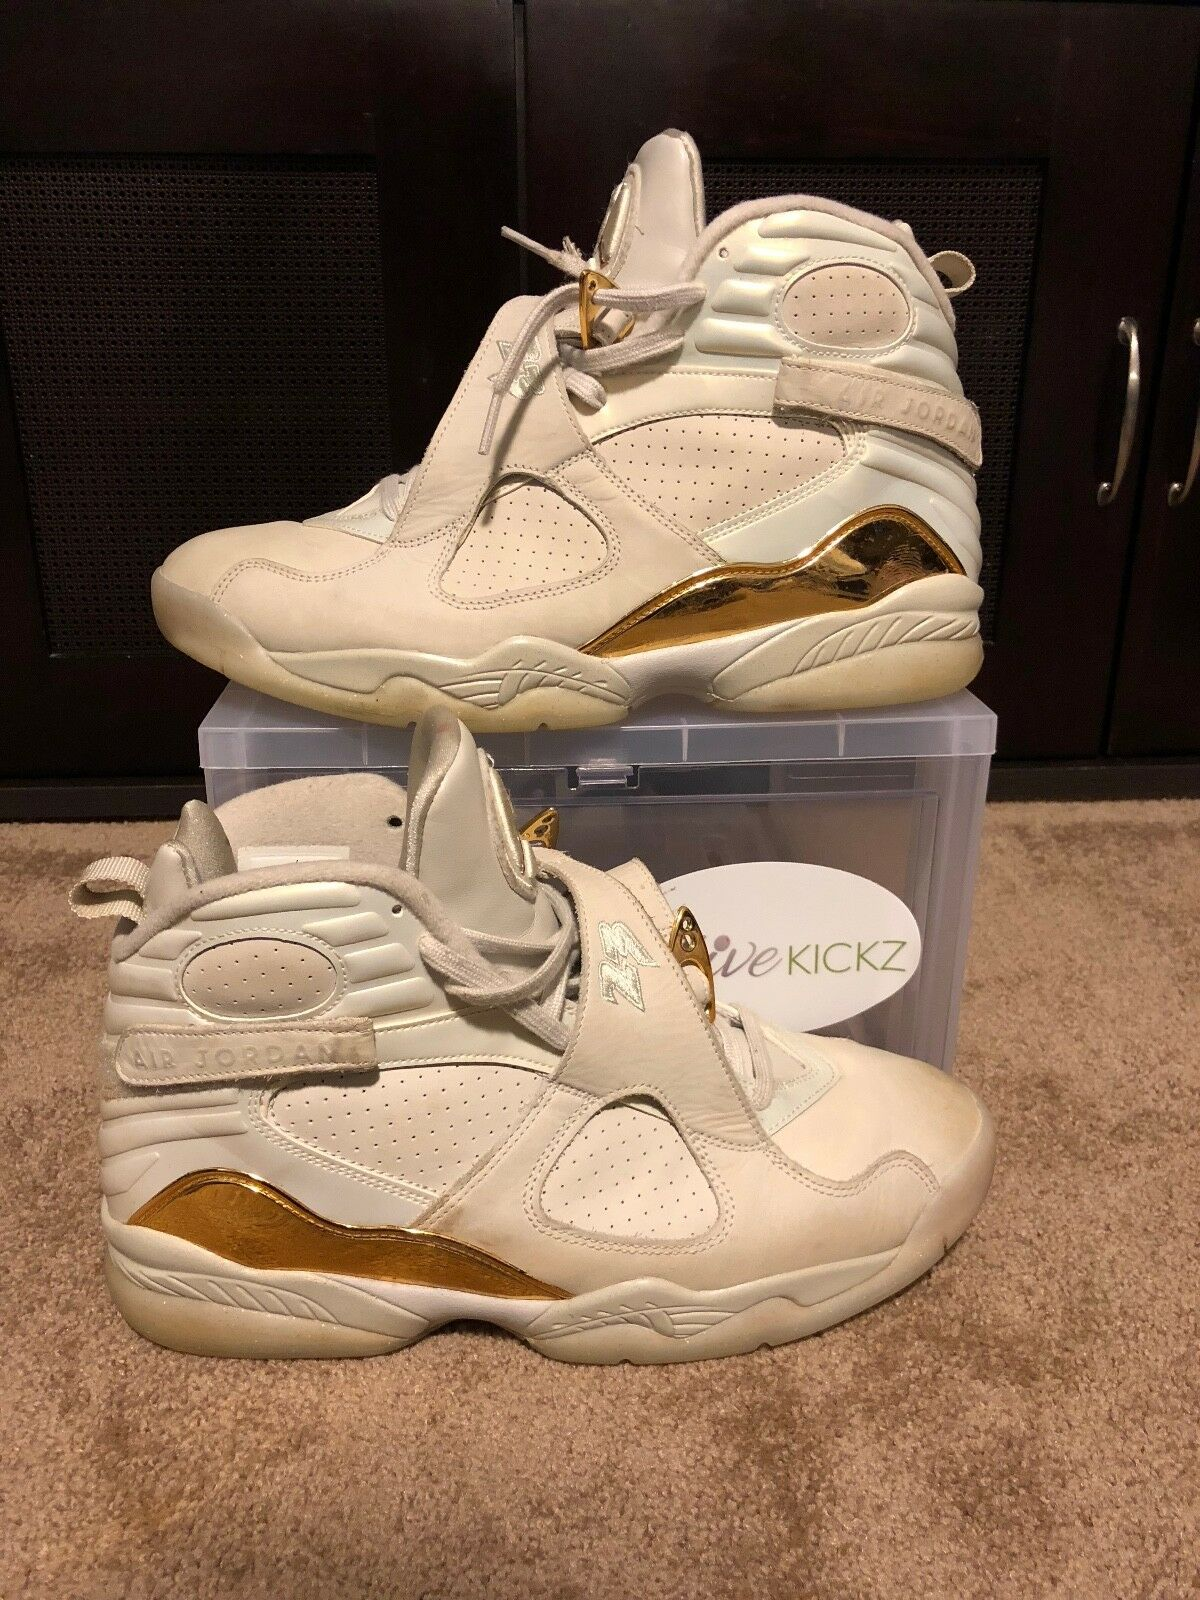 Air Jordan 8 Champagne Size 11 USED